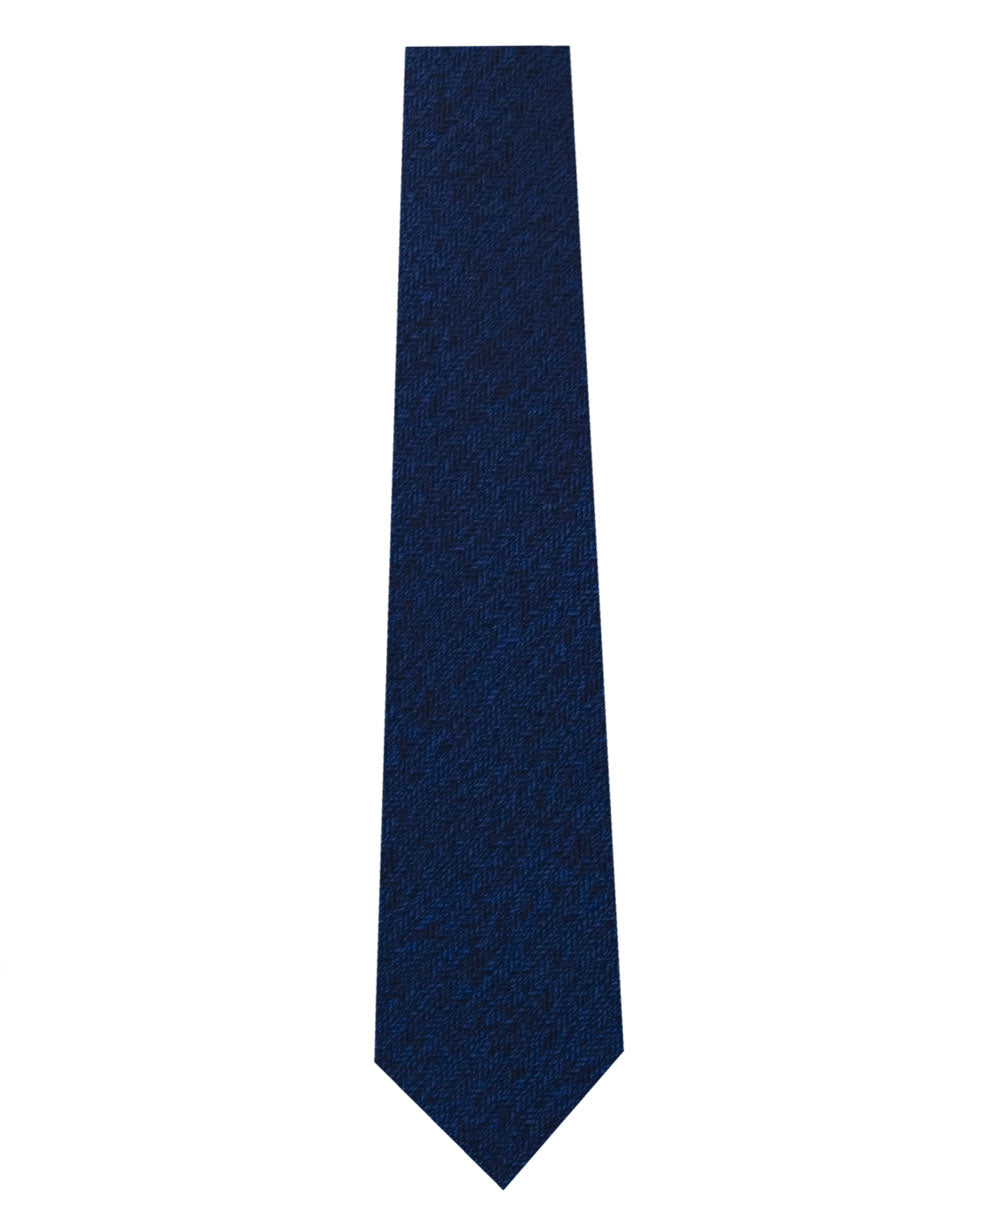 Blue Silk Tie with Herringbone Pattern Long